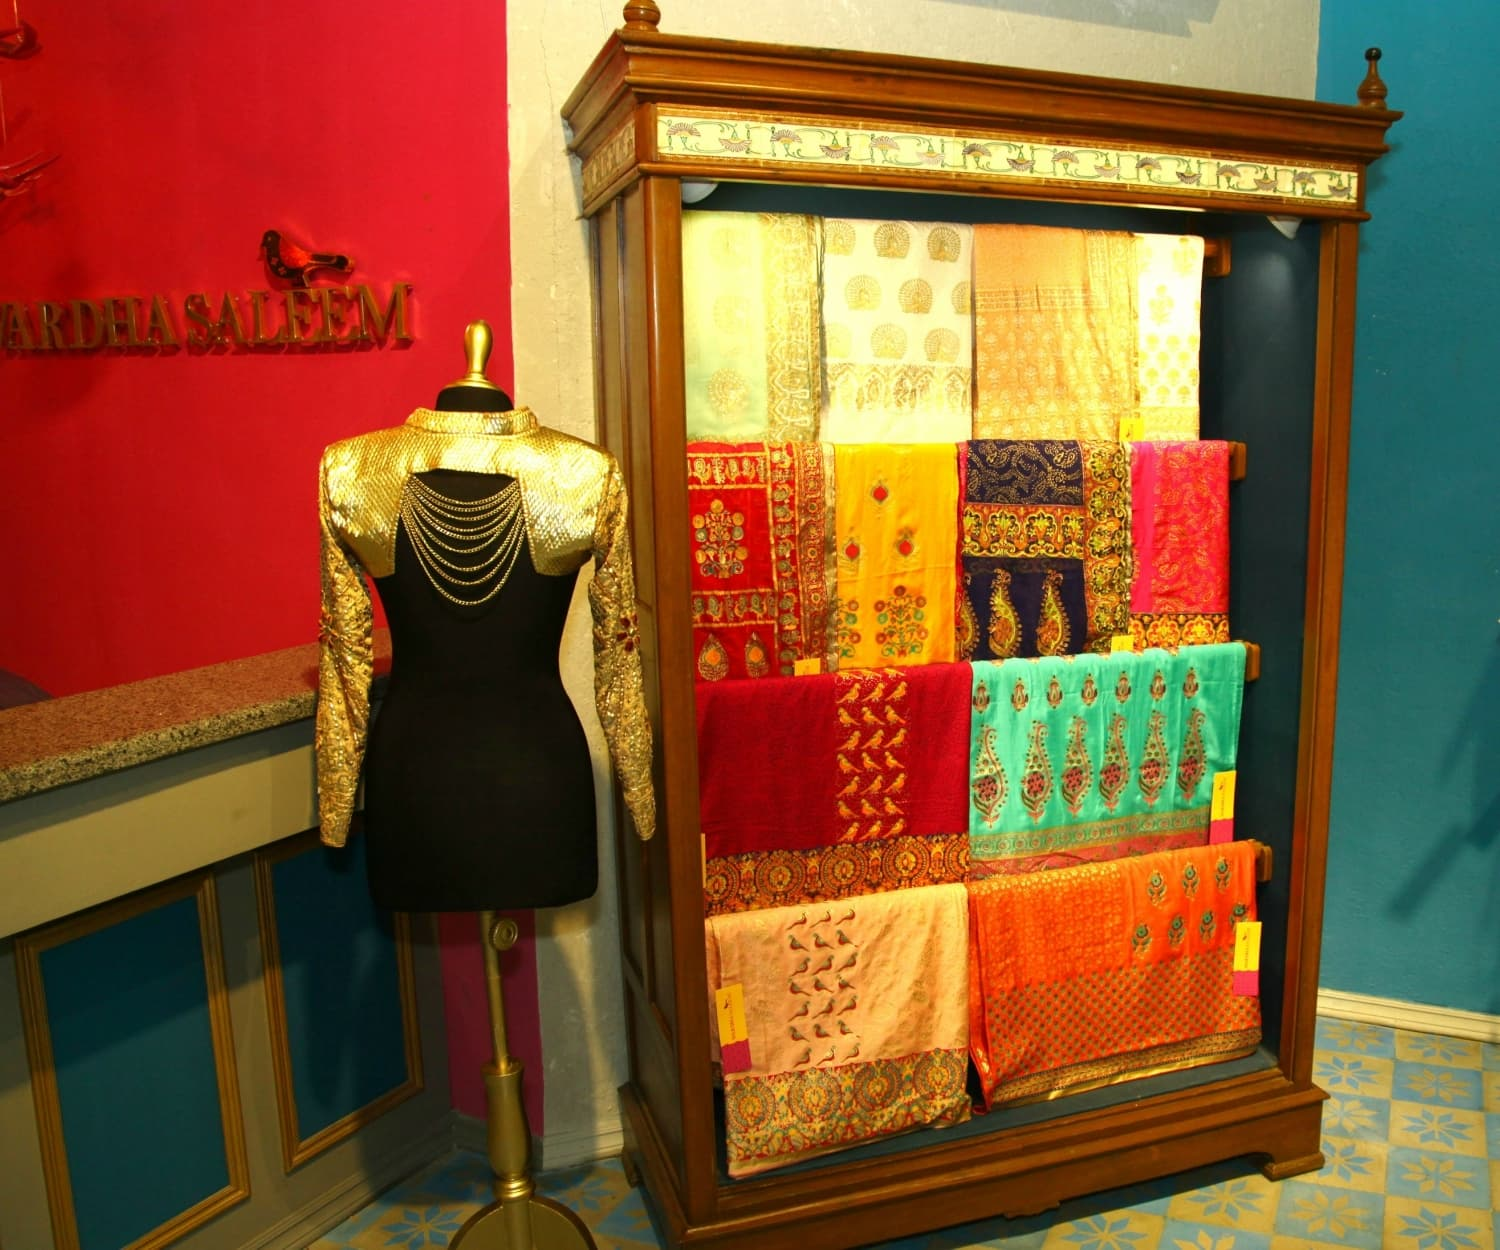 Unstitched fabric is displayed in a vintage cupboard that came from Wardha's ancestral home in Hyderabad